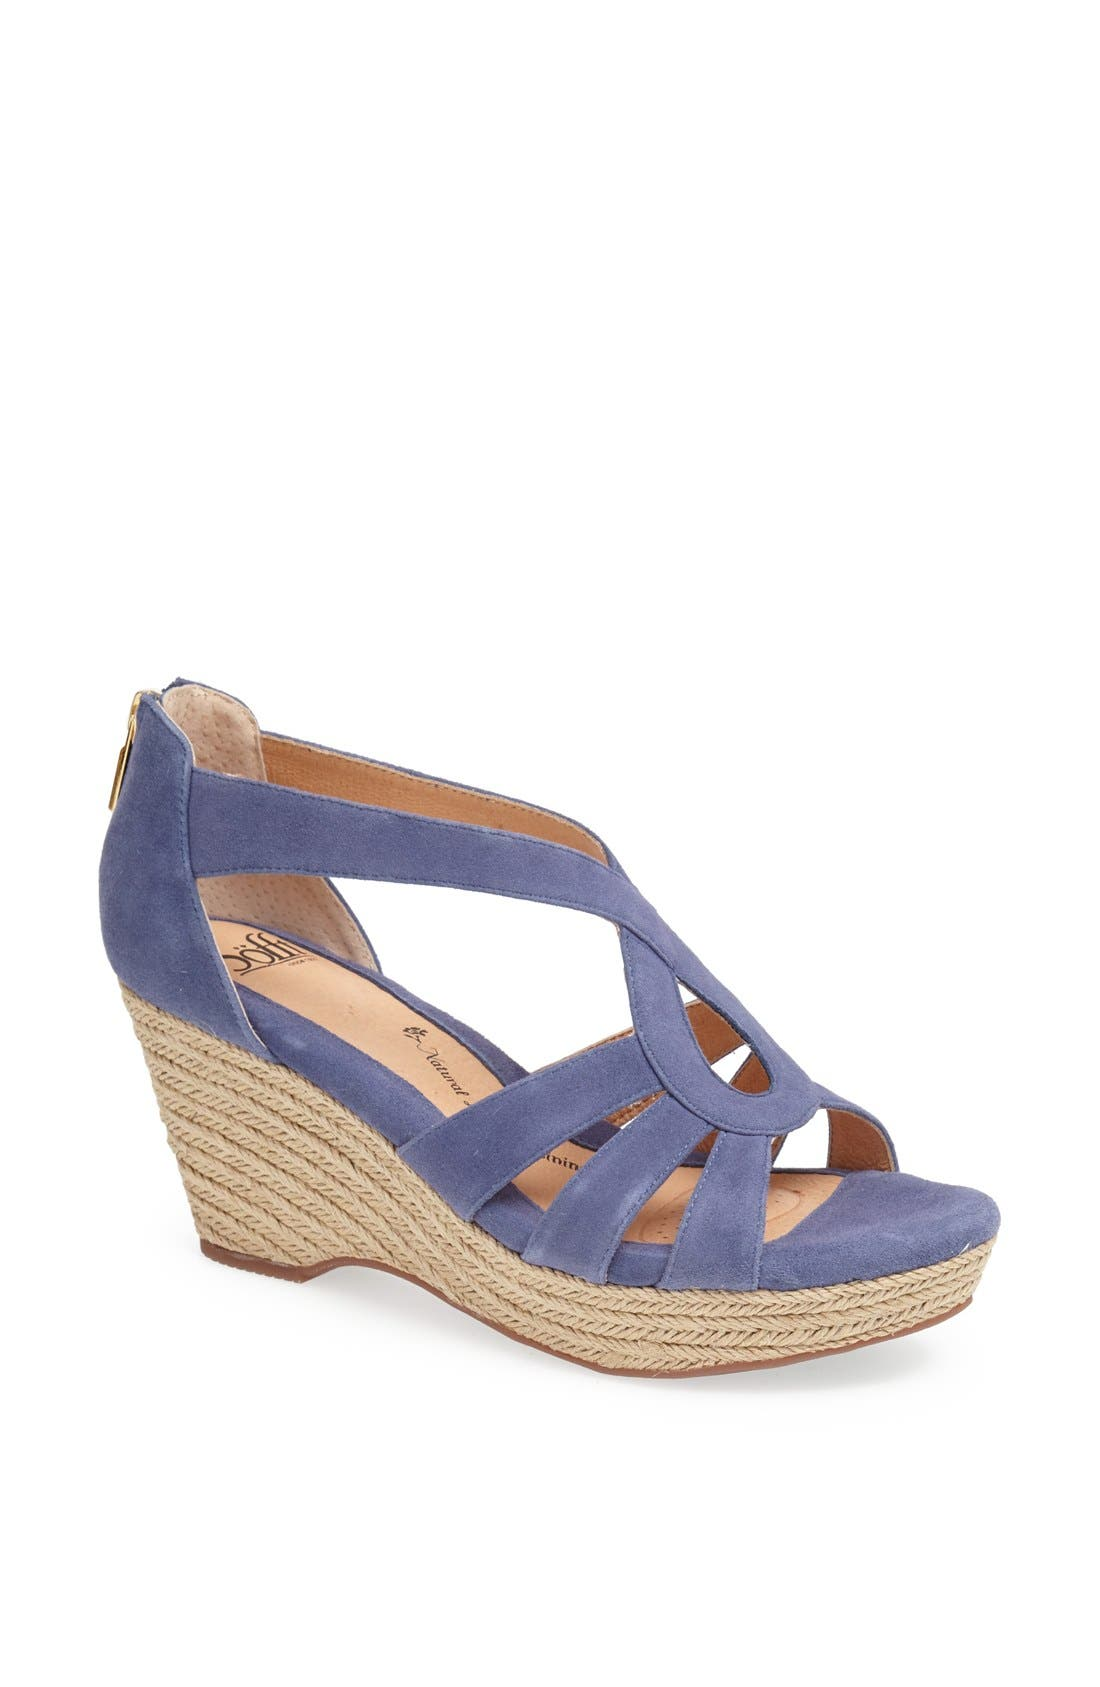 Alternate Image 1 Selected - Söfft 'Mena' Espadrille Wedge Sandal